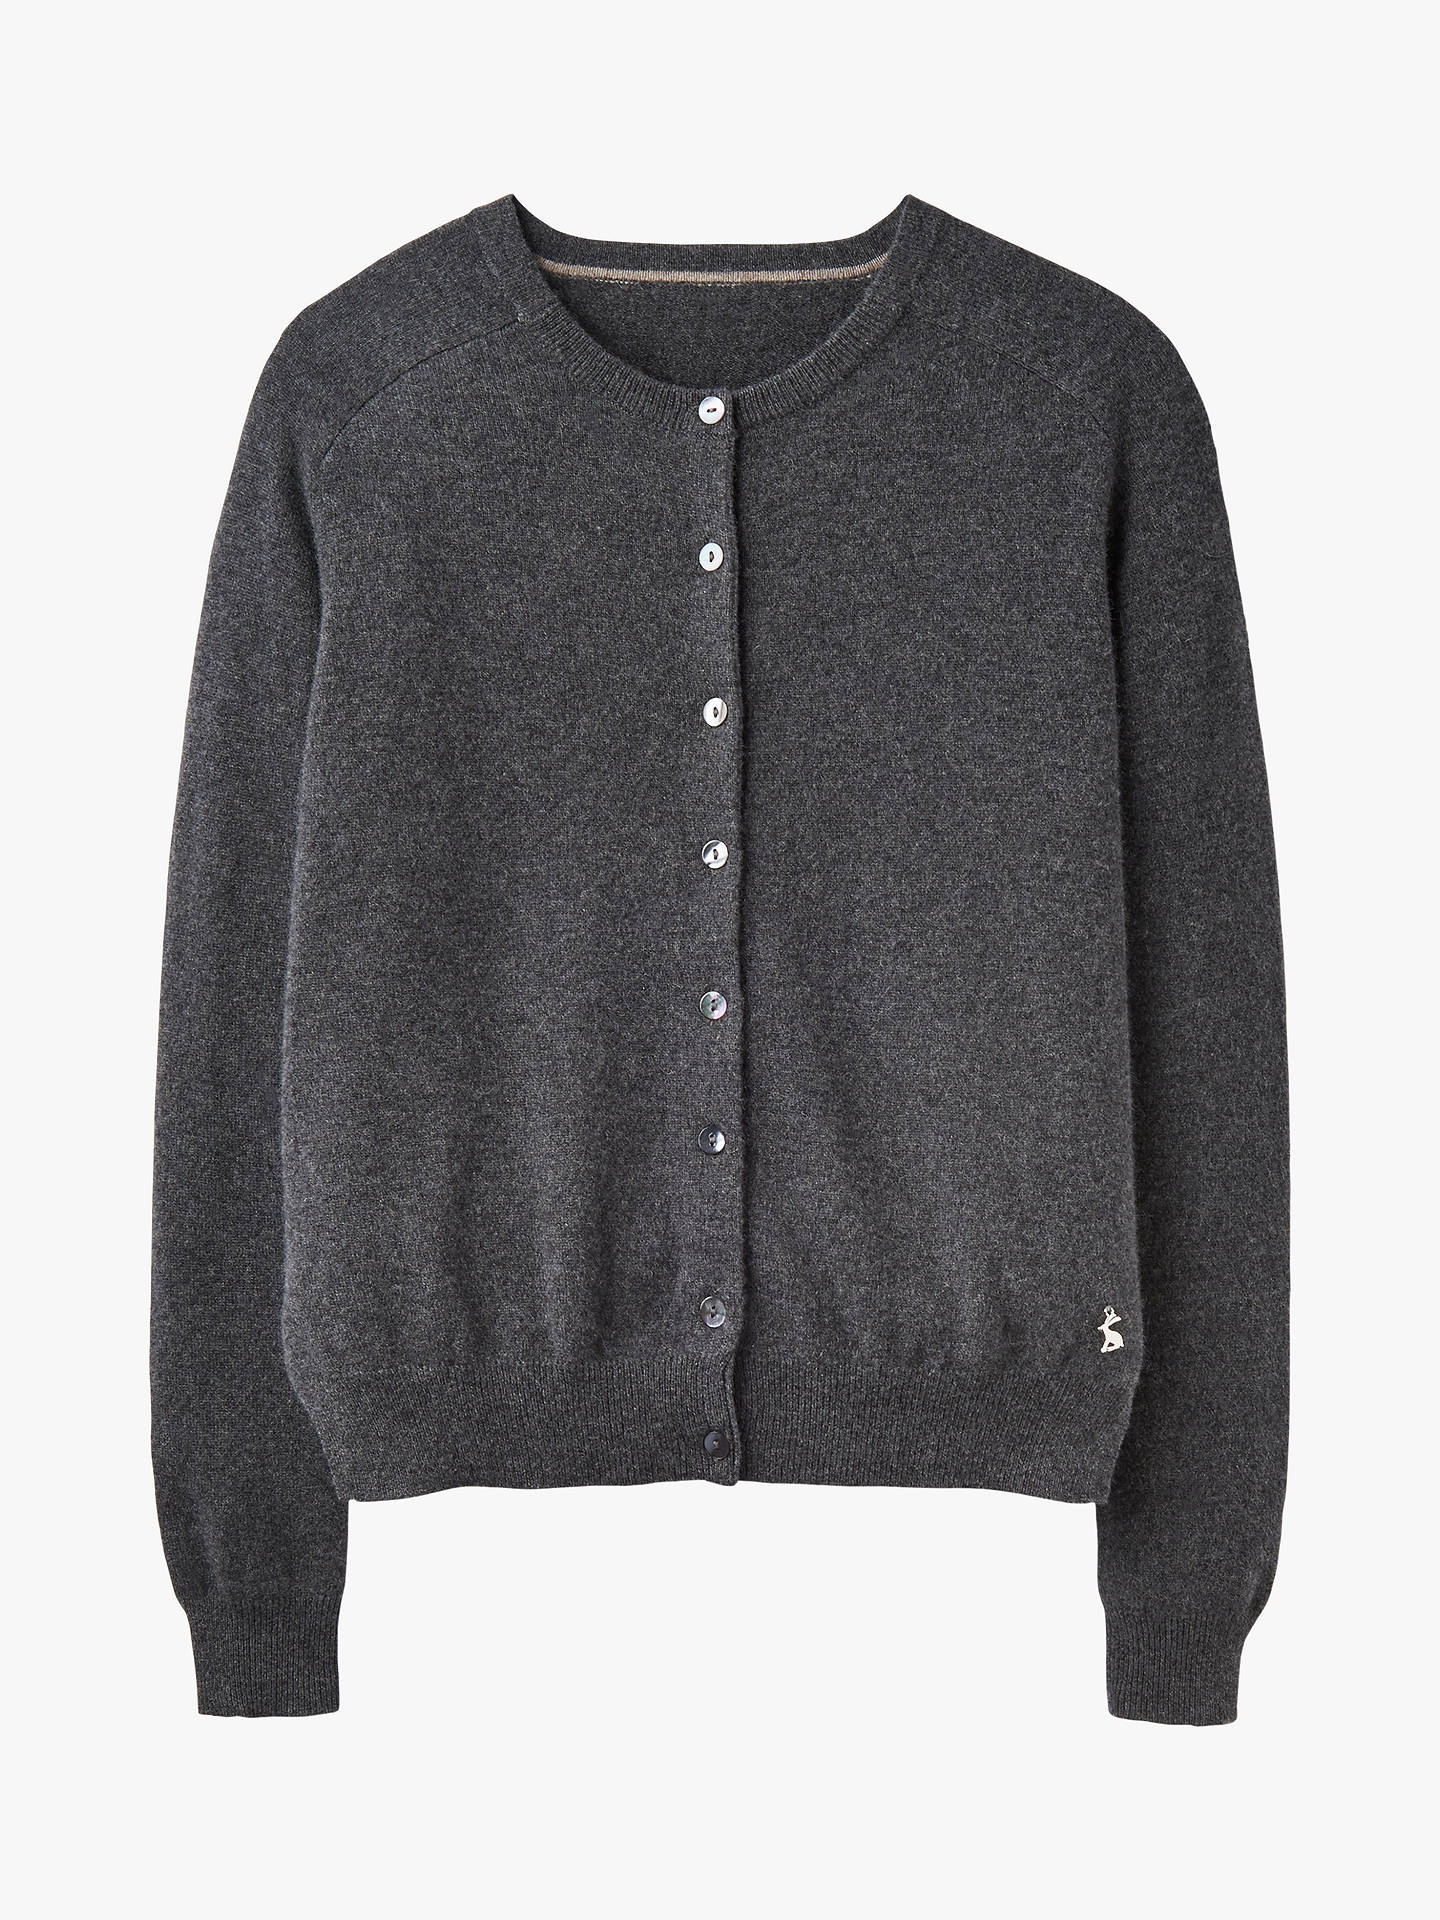 BuyJoules Evelyn Raglan Colour Strip Cardigan, Charcoal, 8 Online at johnlewis.com